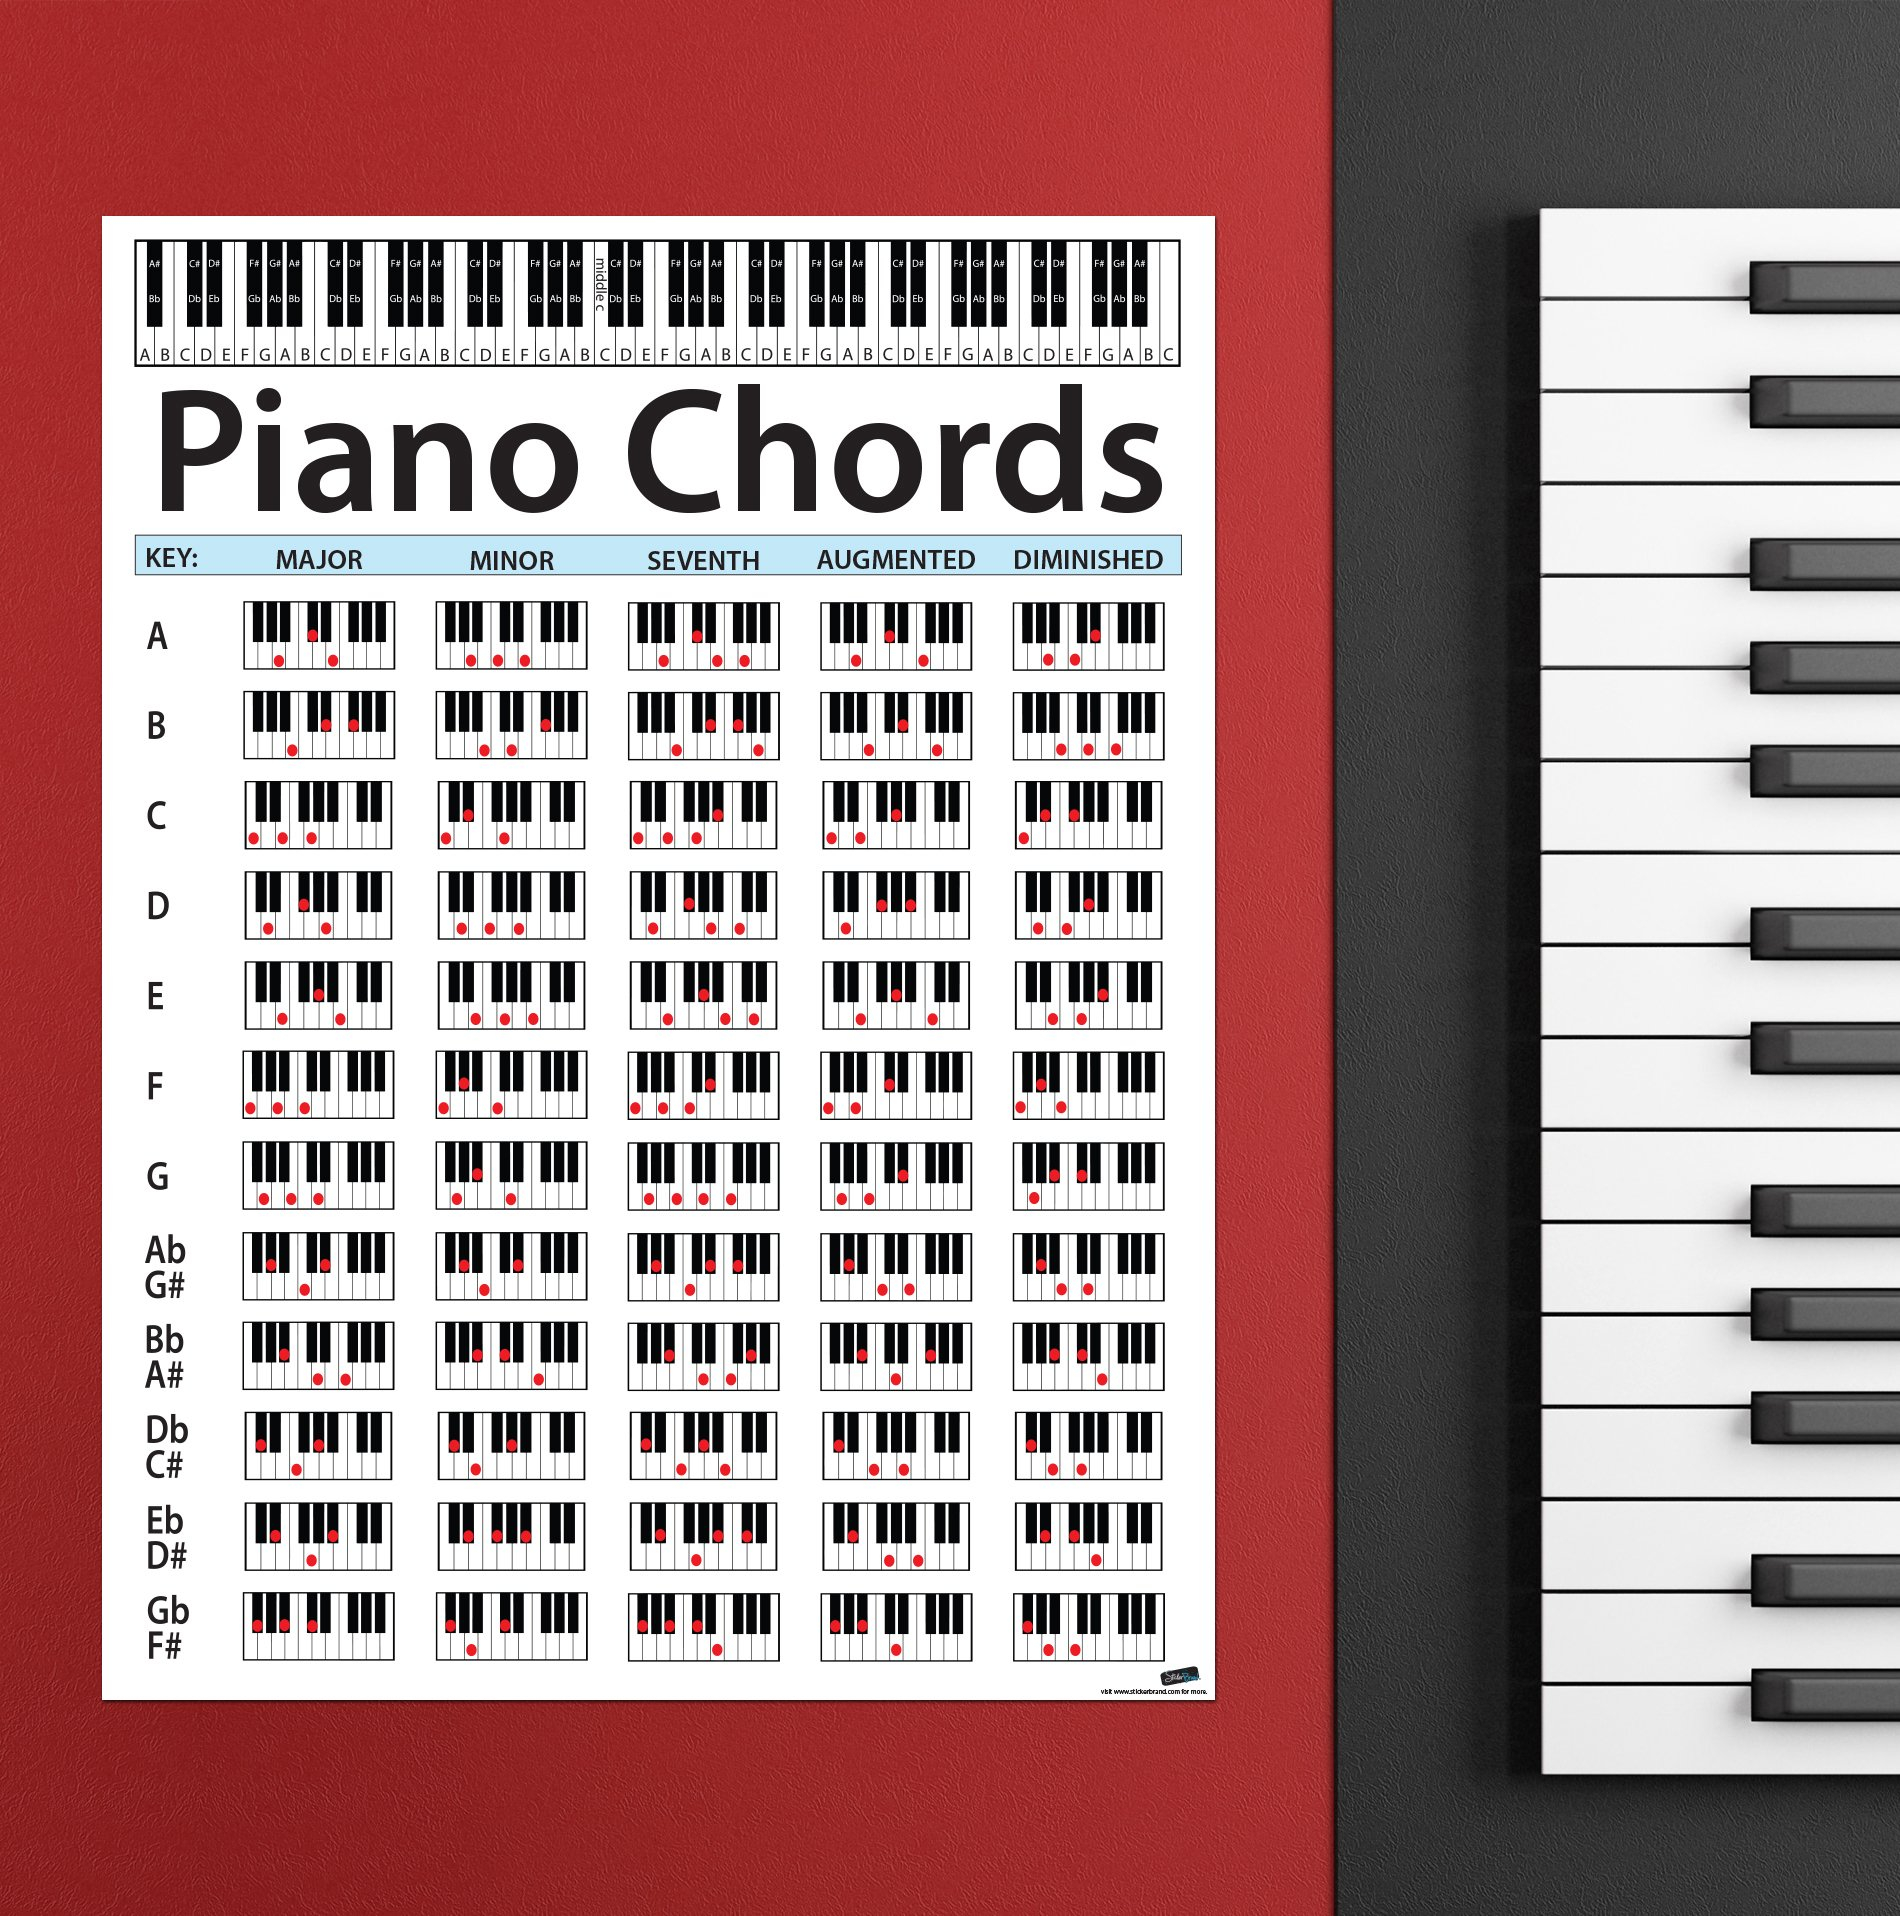 Piano Chord Chart Popular Piano Chord Progressions Prototypical Piano Chord Chart With